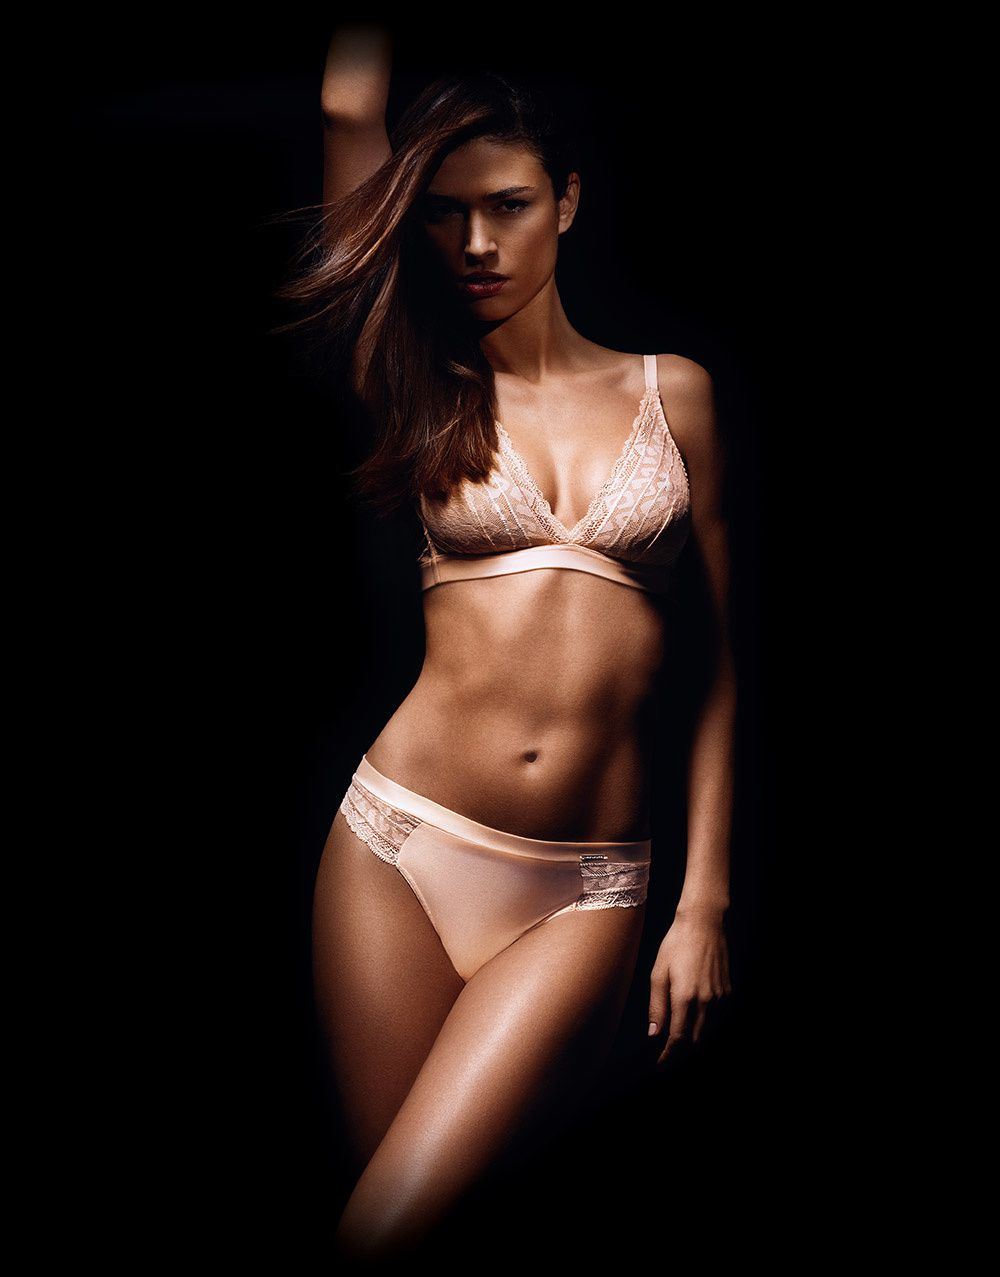 Implicite lingerie by Simone Perele